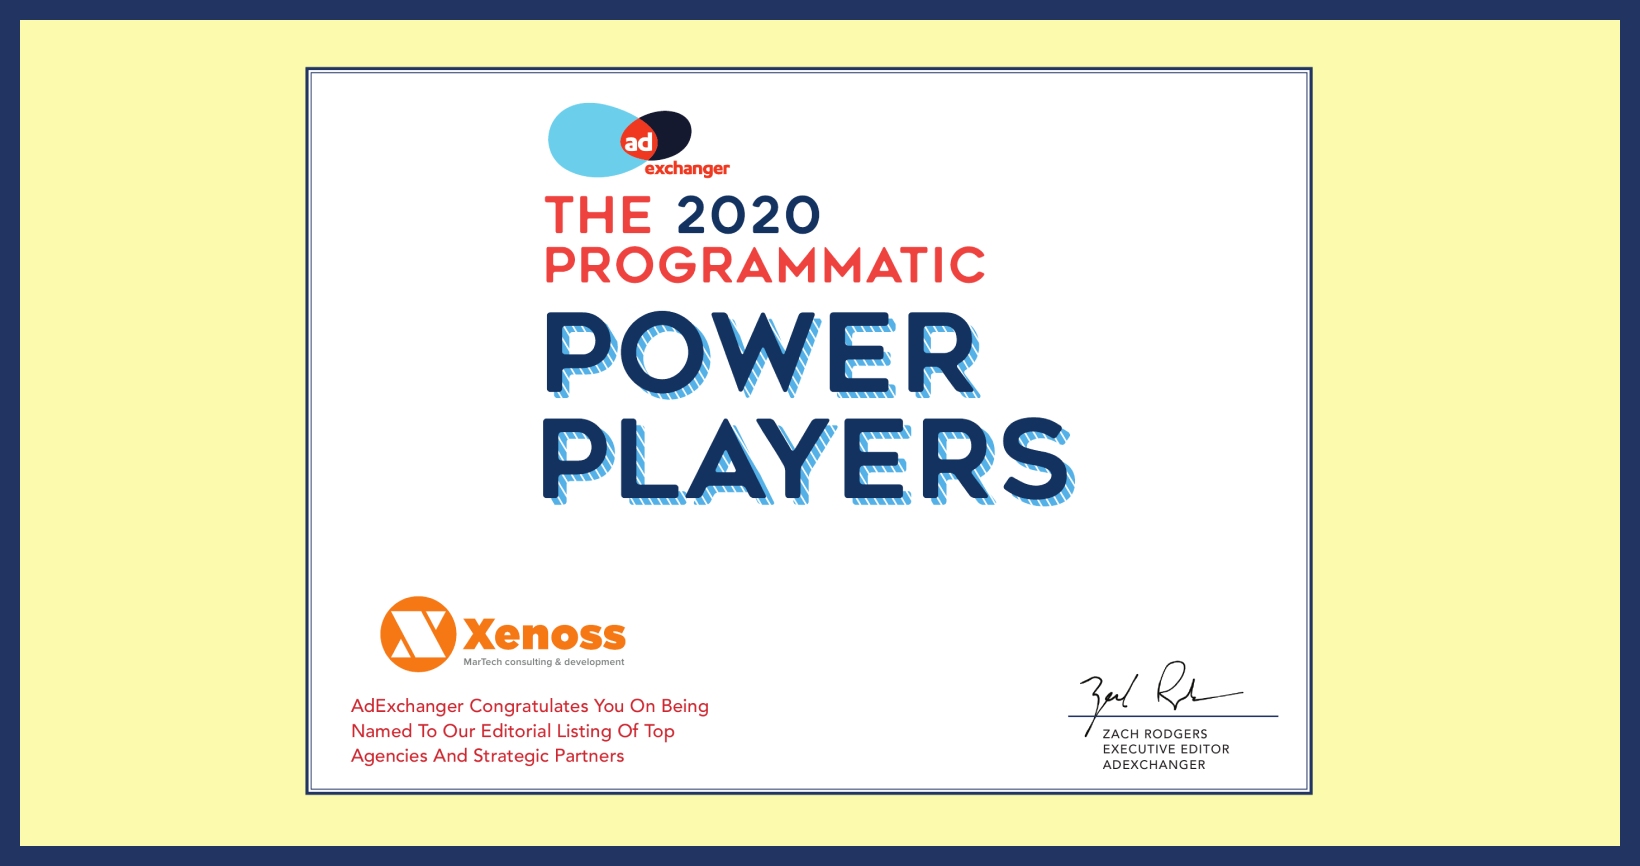 Xenoss - 2020 AdExchanger Programmatic Power Players